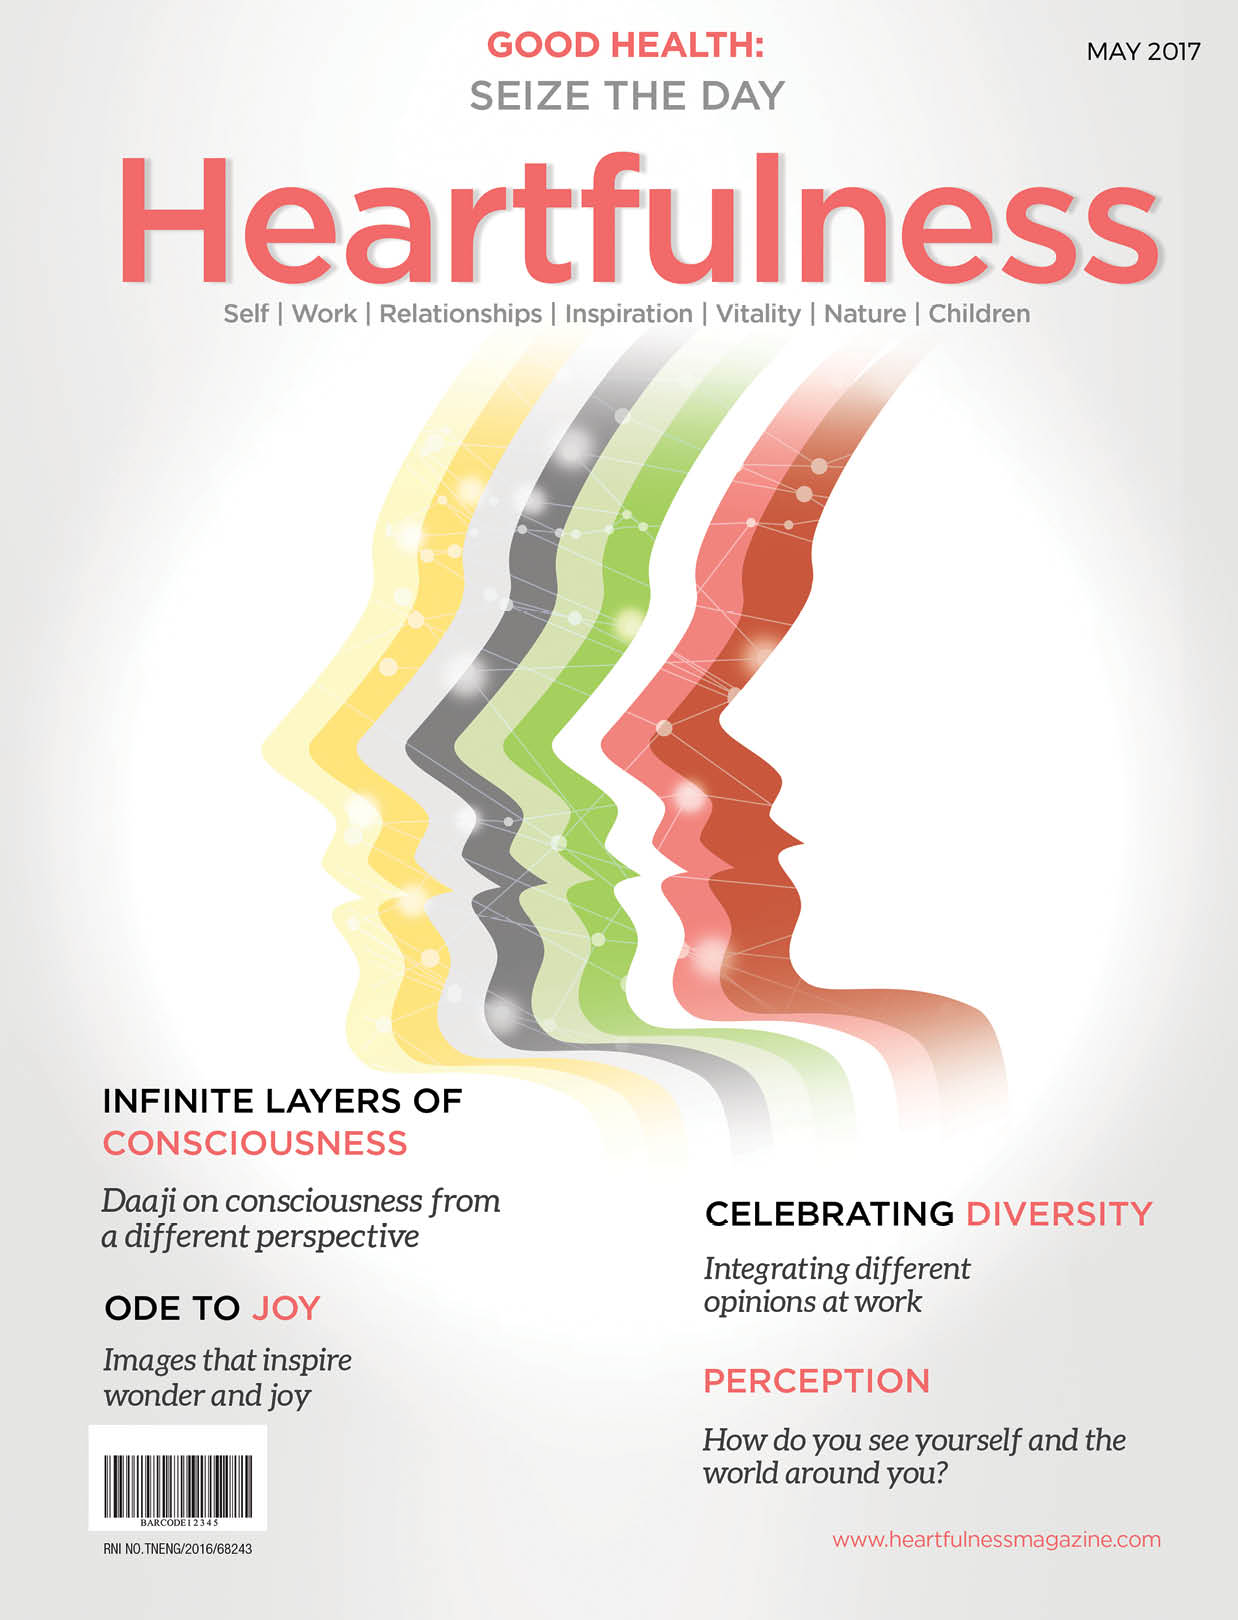 Heartfulness eMagazine - May 2017